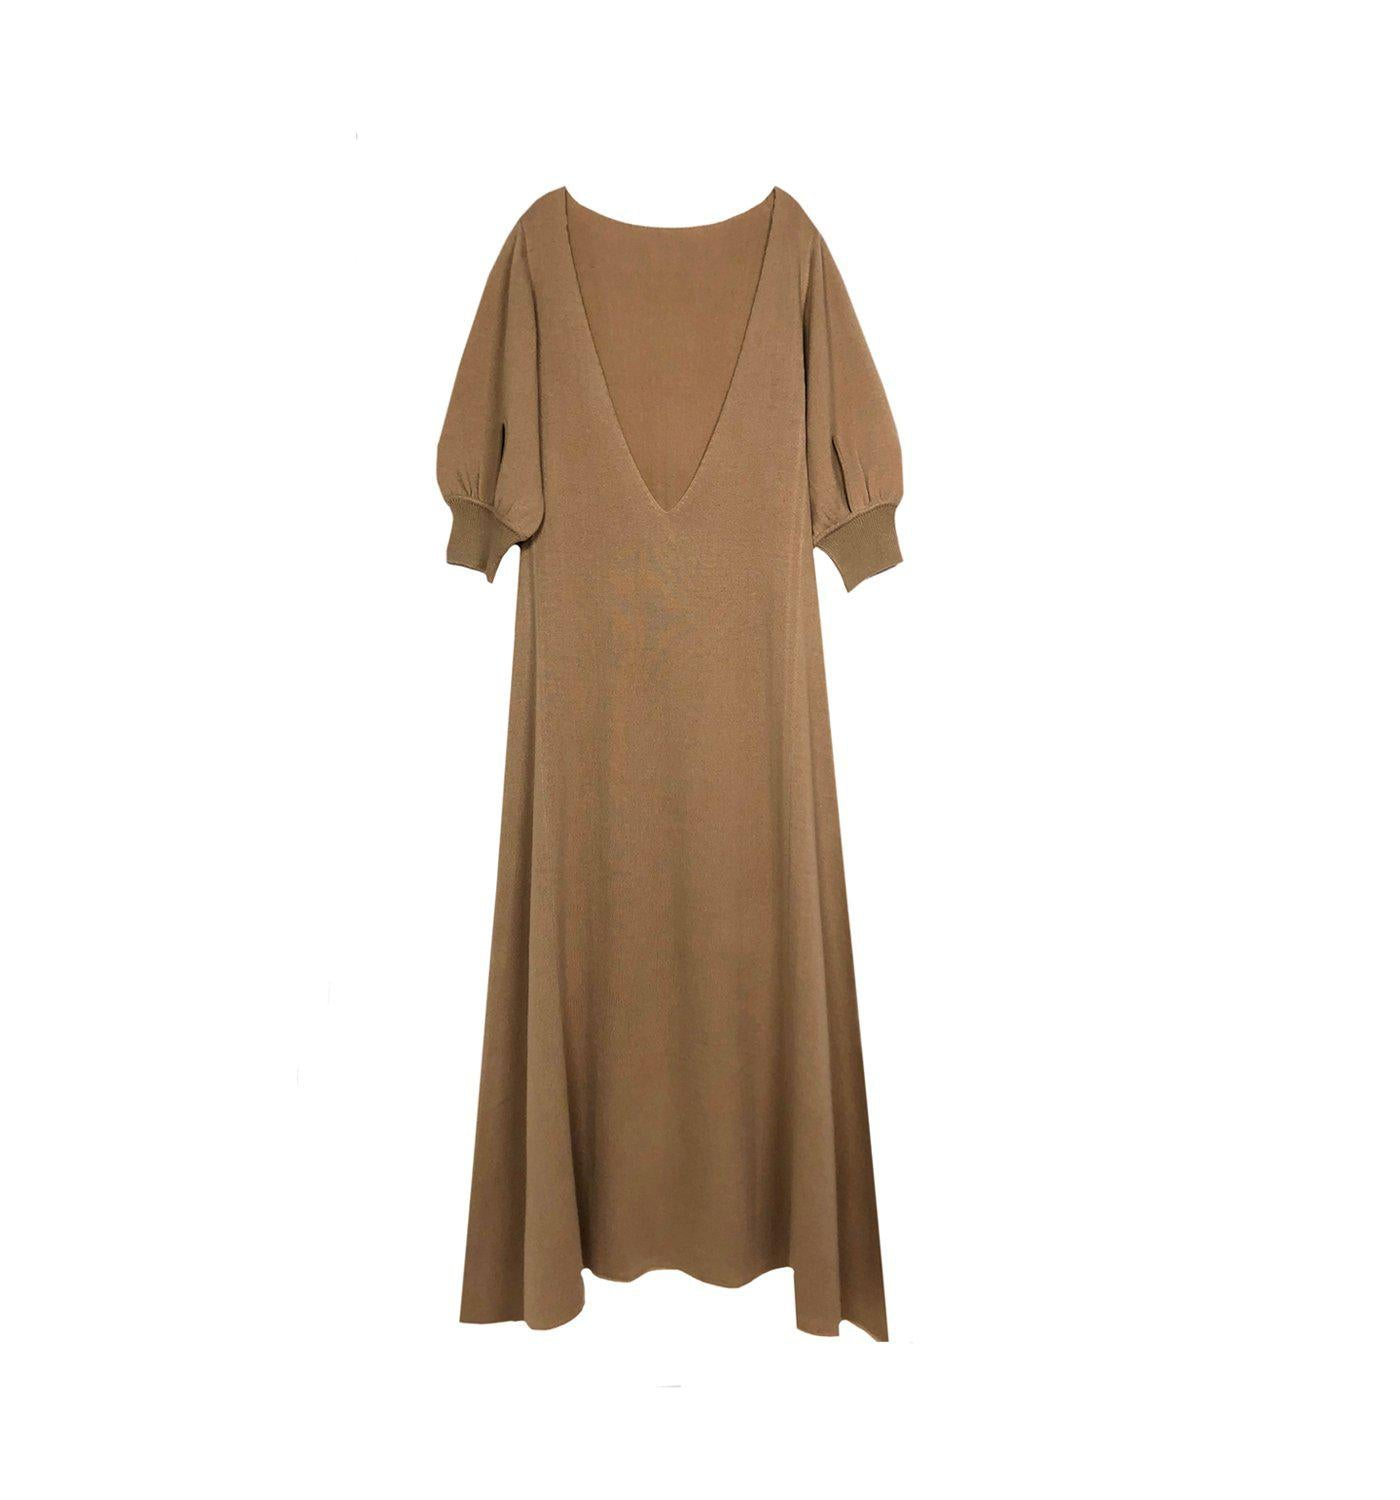 RYAN ROCHE CASHMERE BACK V LONG 3/4 SLEEVE DRESS